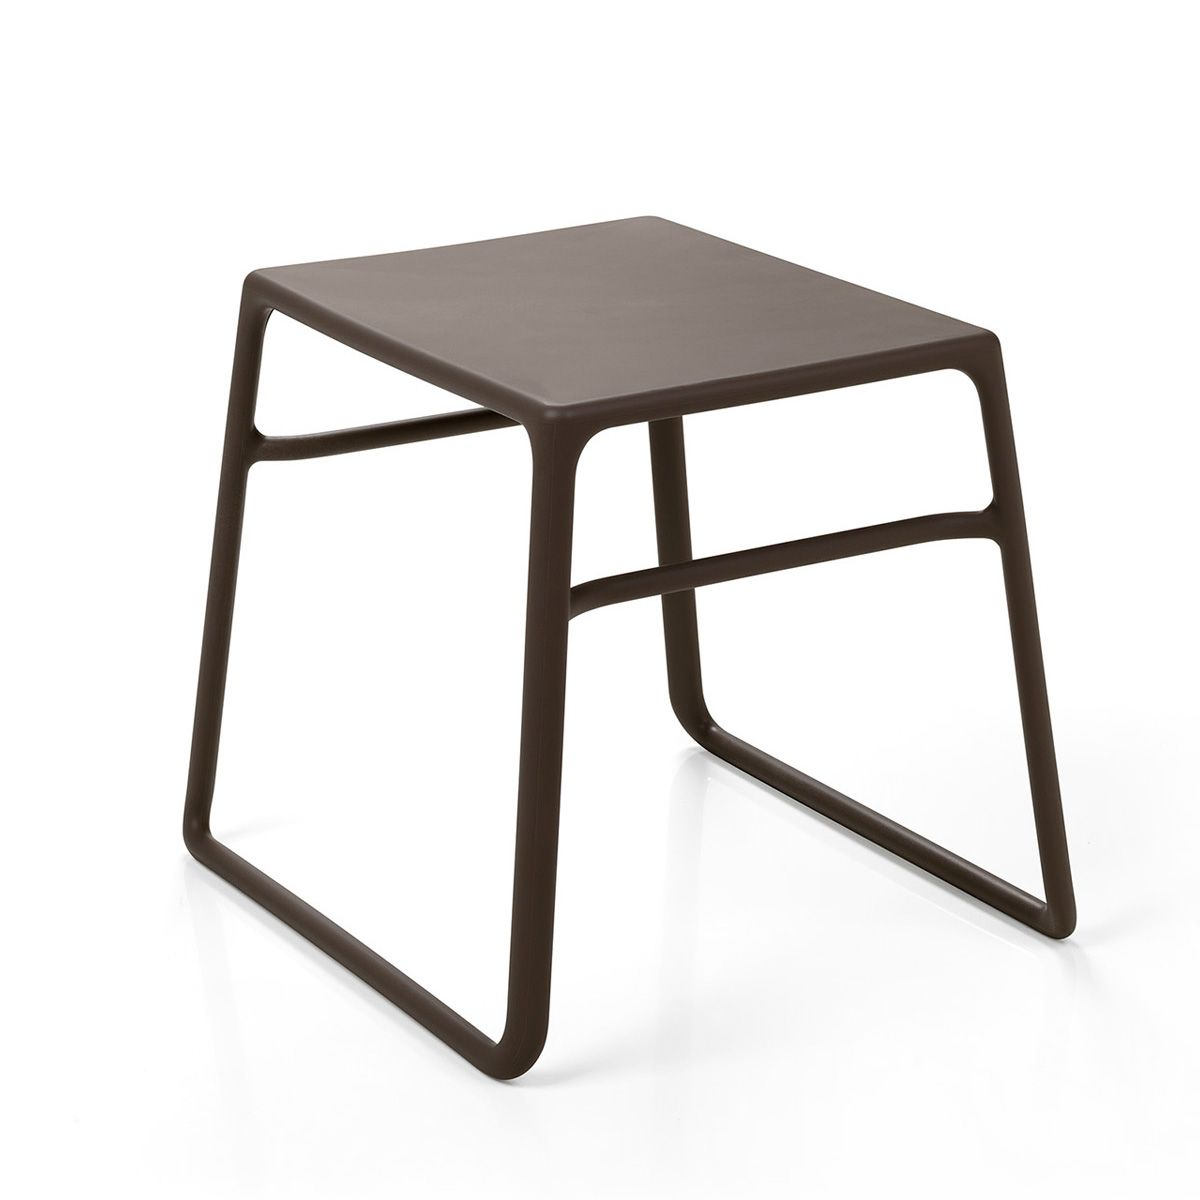 Table basse exterieur design pop nardi zendart design - Table basse d exterieur ...